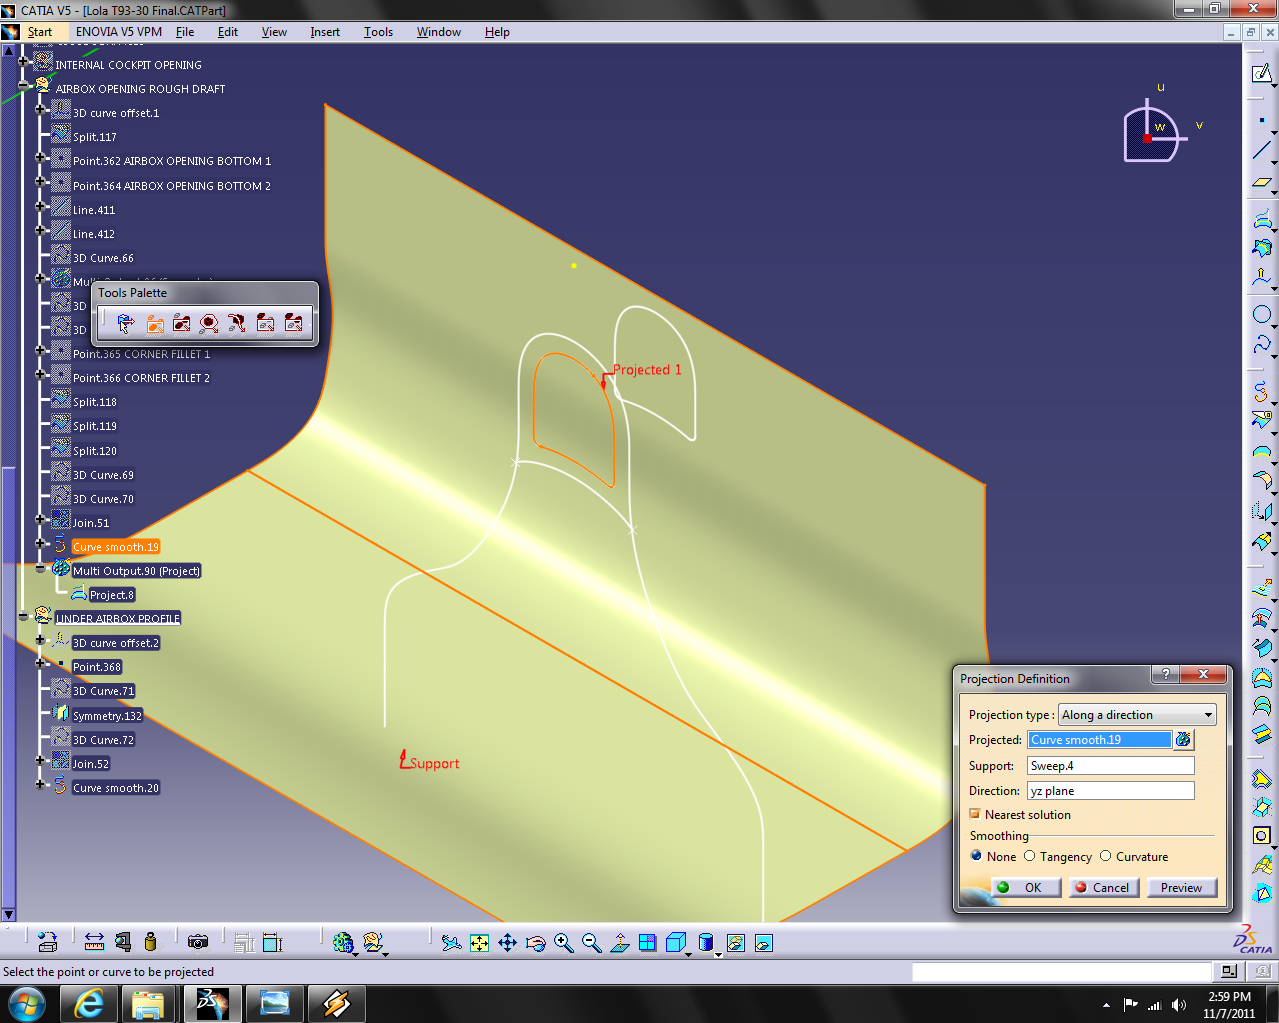 how to close an open profile in catia